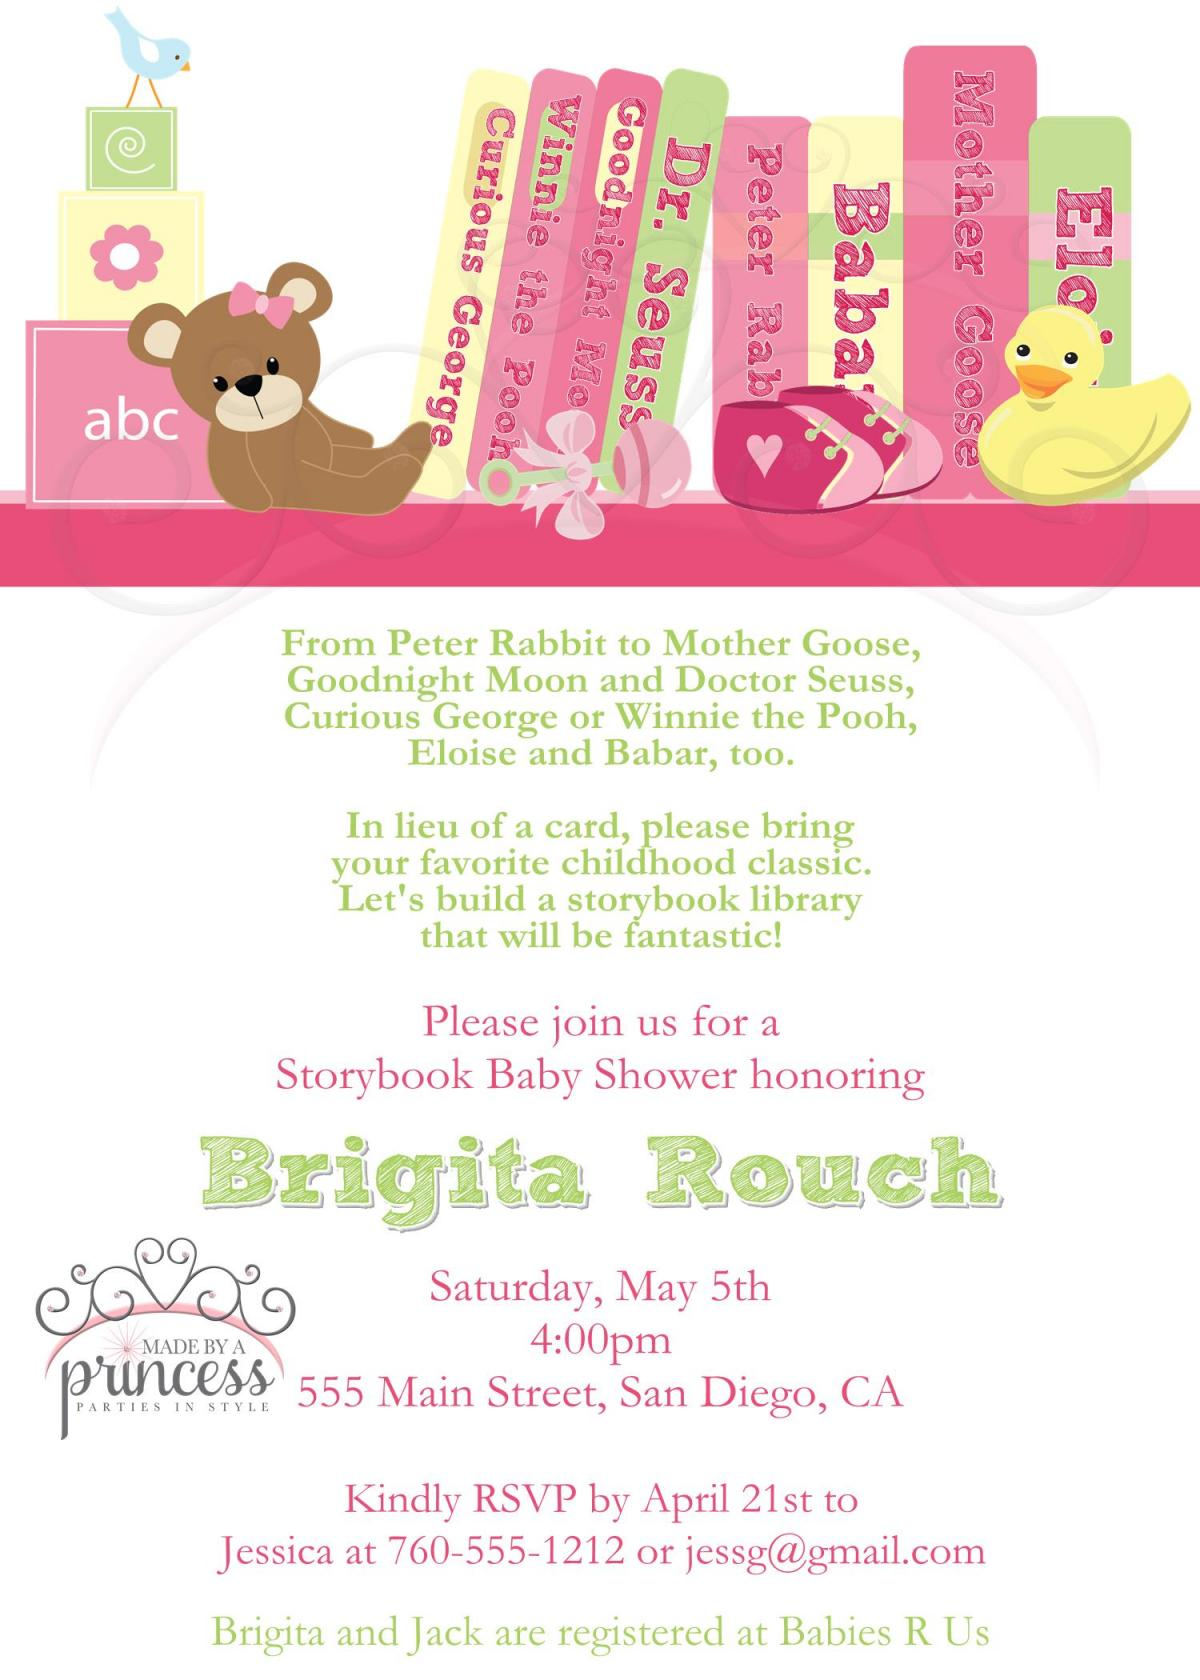 Baby Shower Invitation - Build A Library Pink - Printable DIY on Luulla